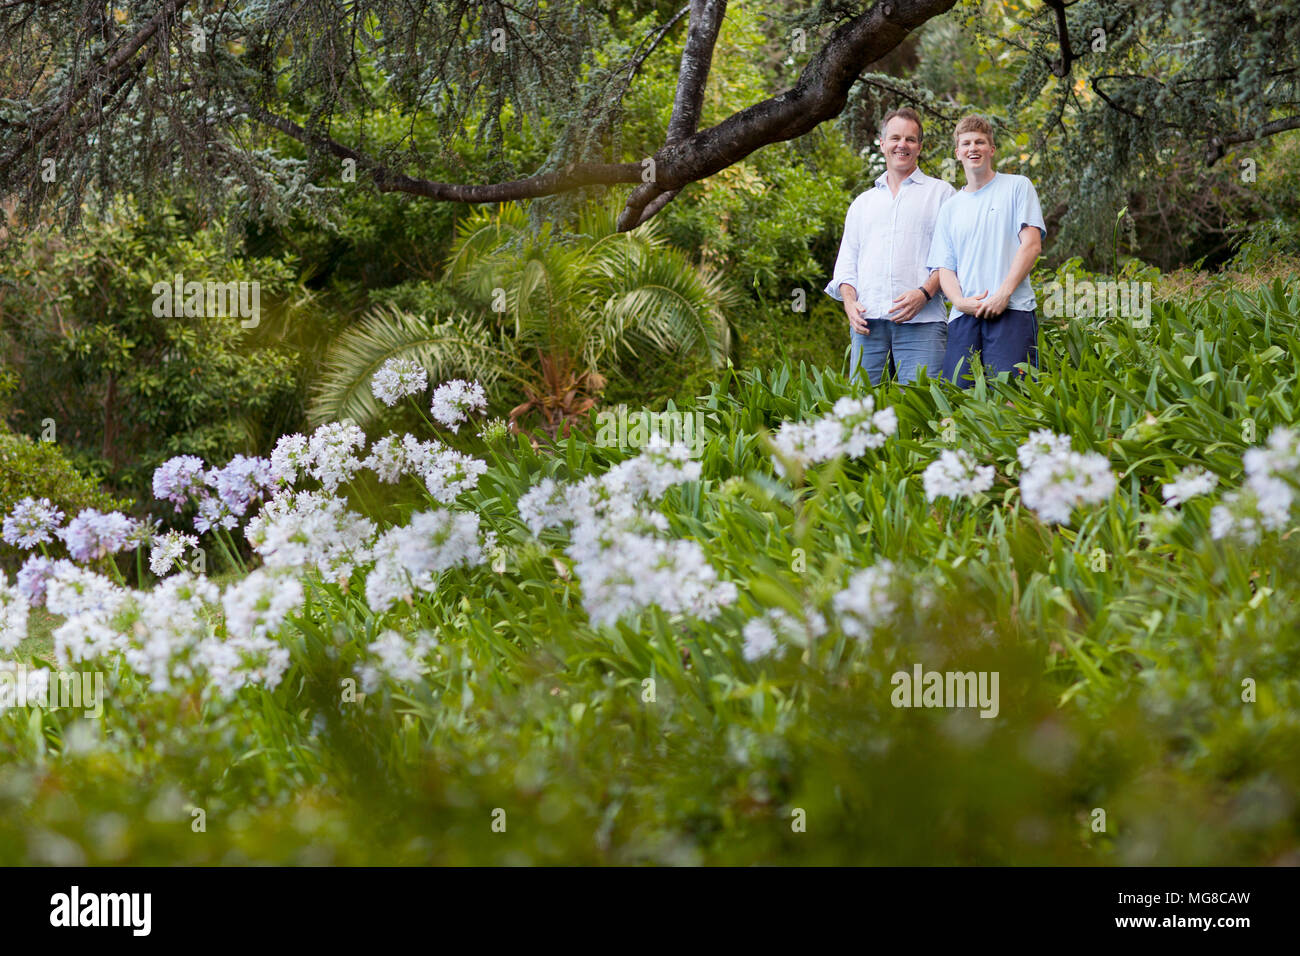 Father and son in Kirstenbosch Gardens - Stock Image